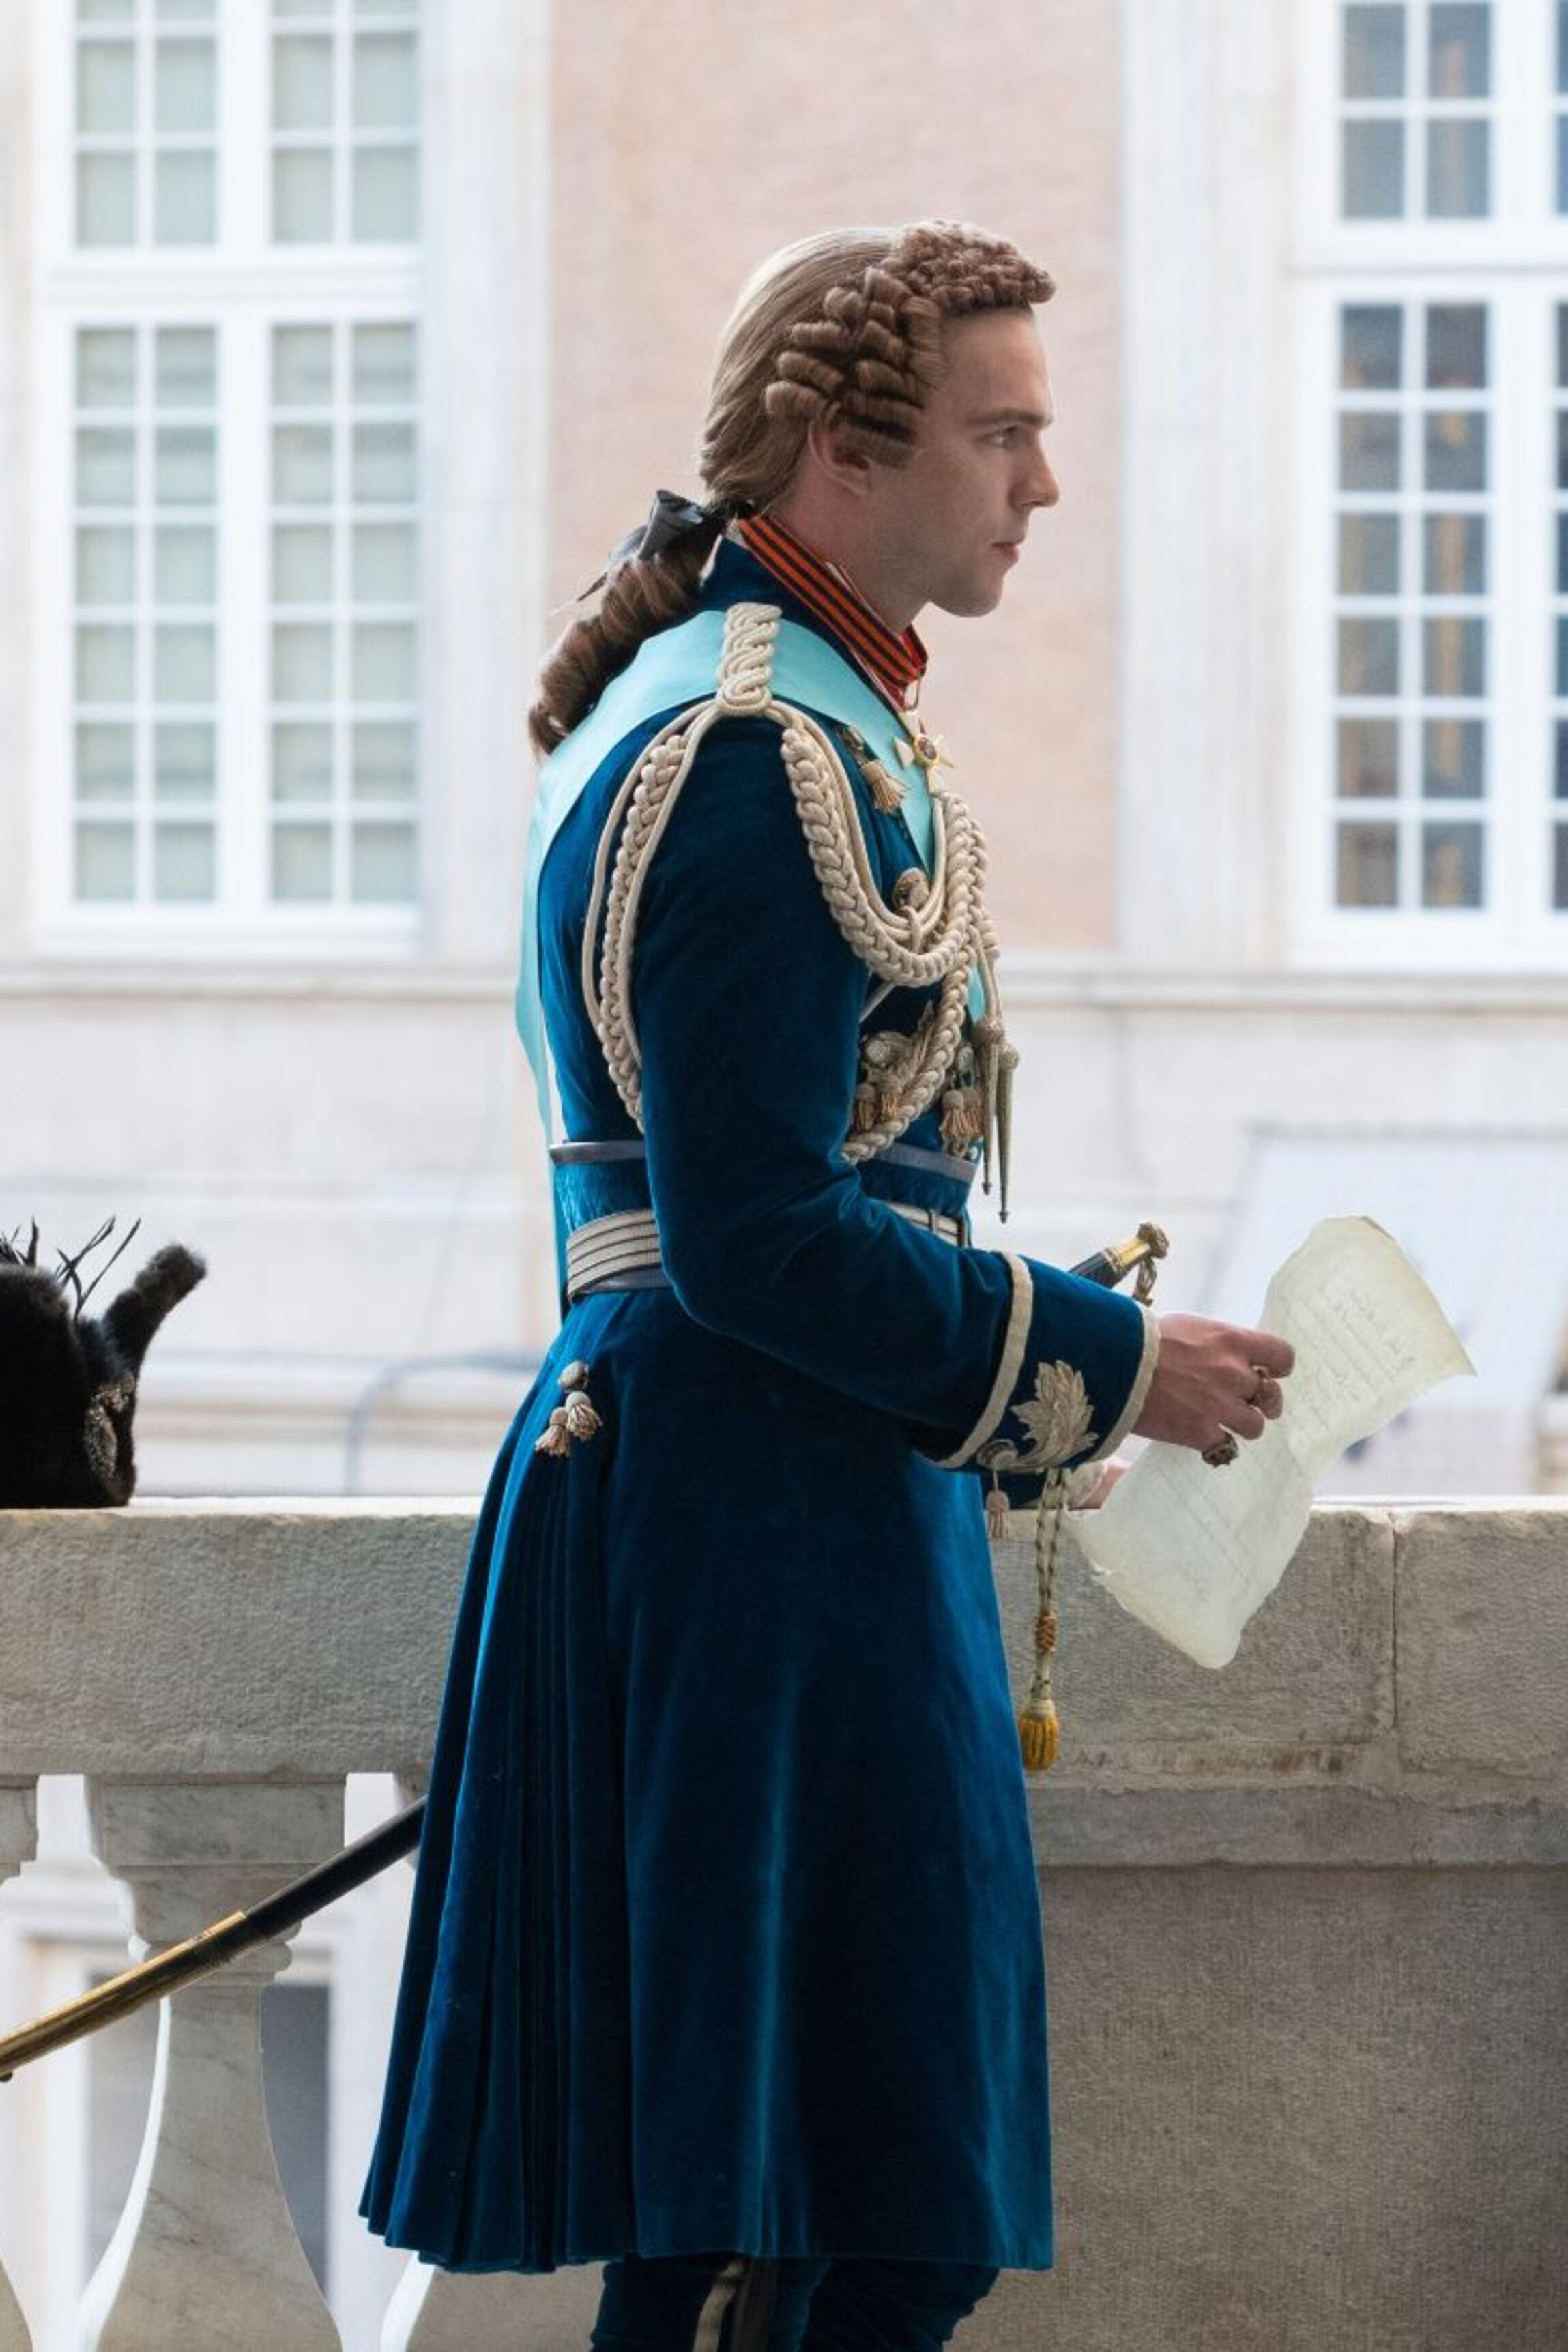 The Great - And You Sir, Are No Peter the Great